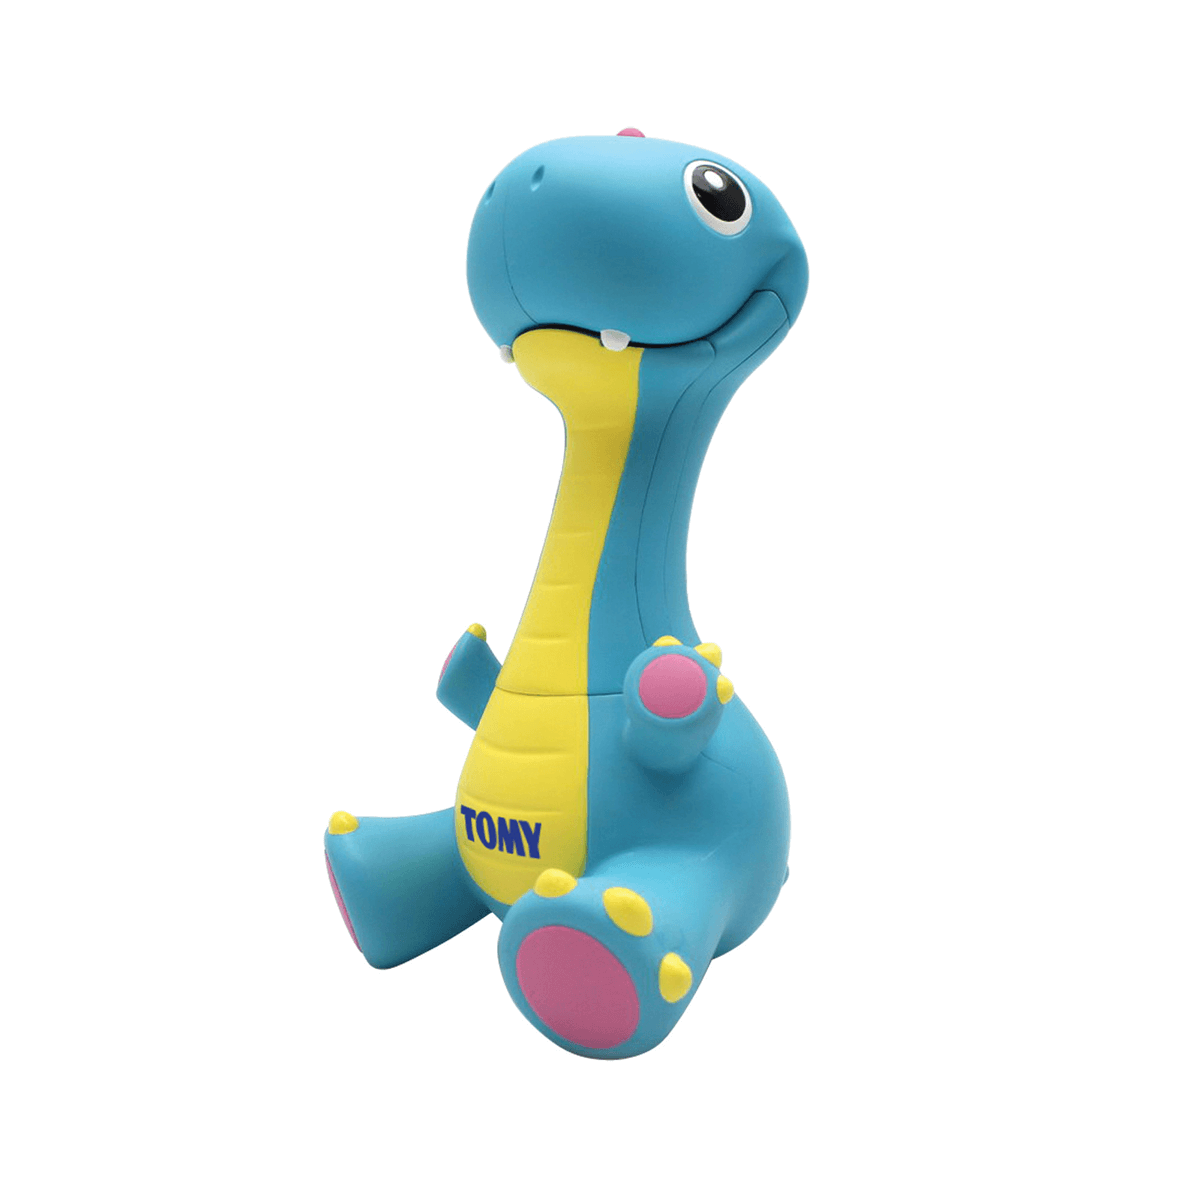 Tomy Toomies Stomp & Roar Dinosaur from Early Learning Center